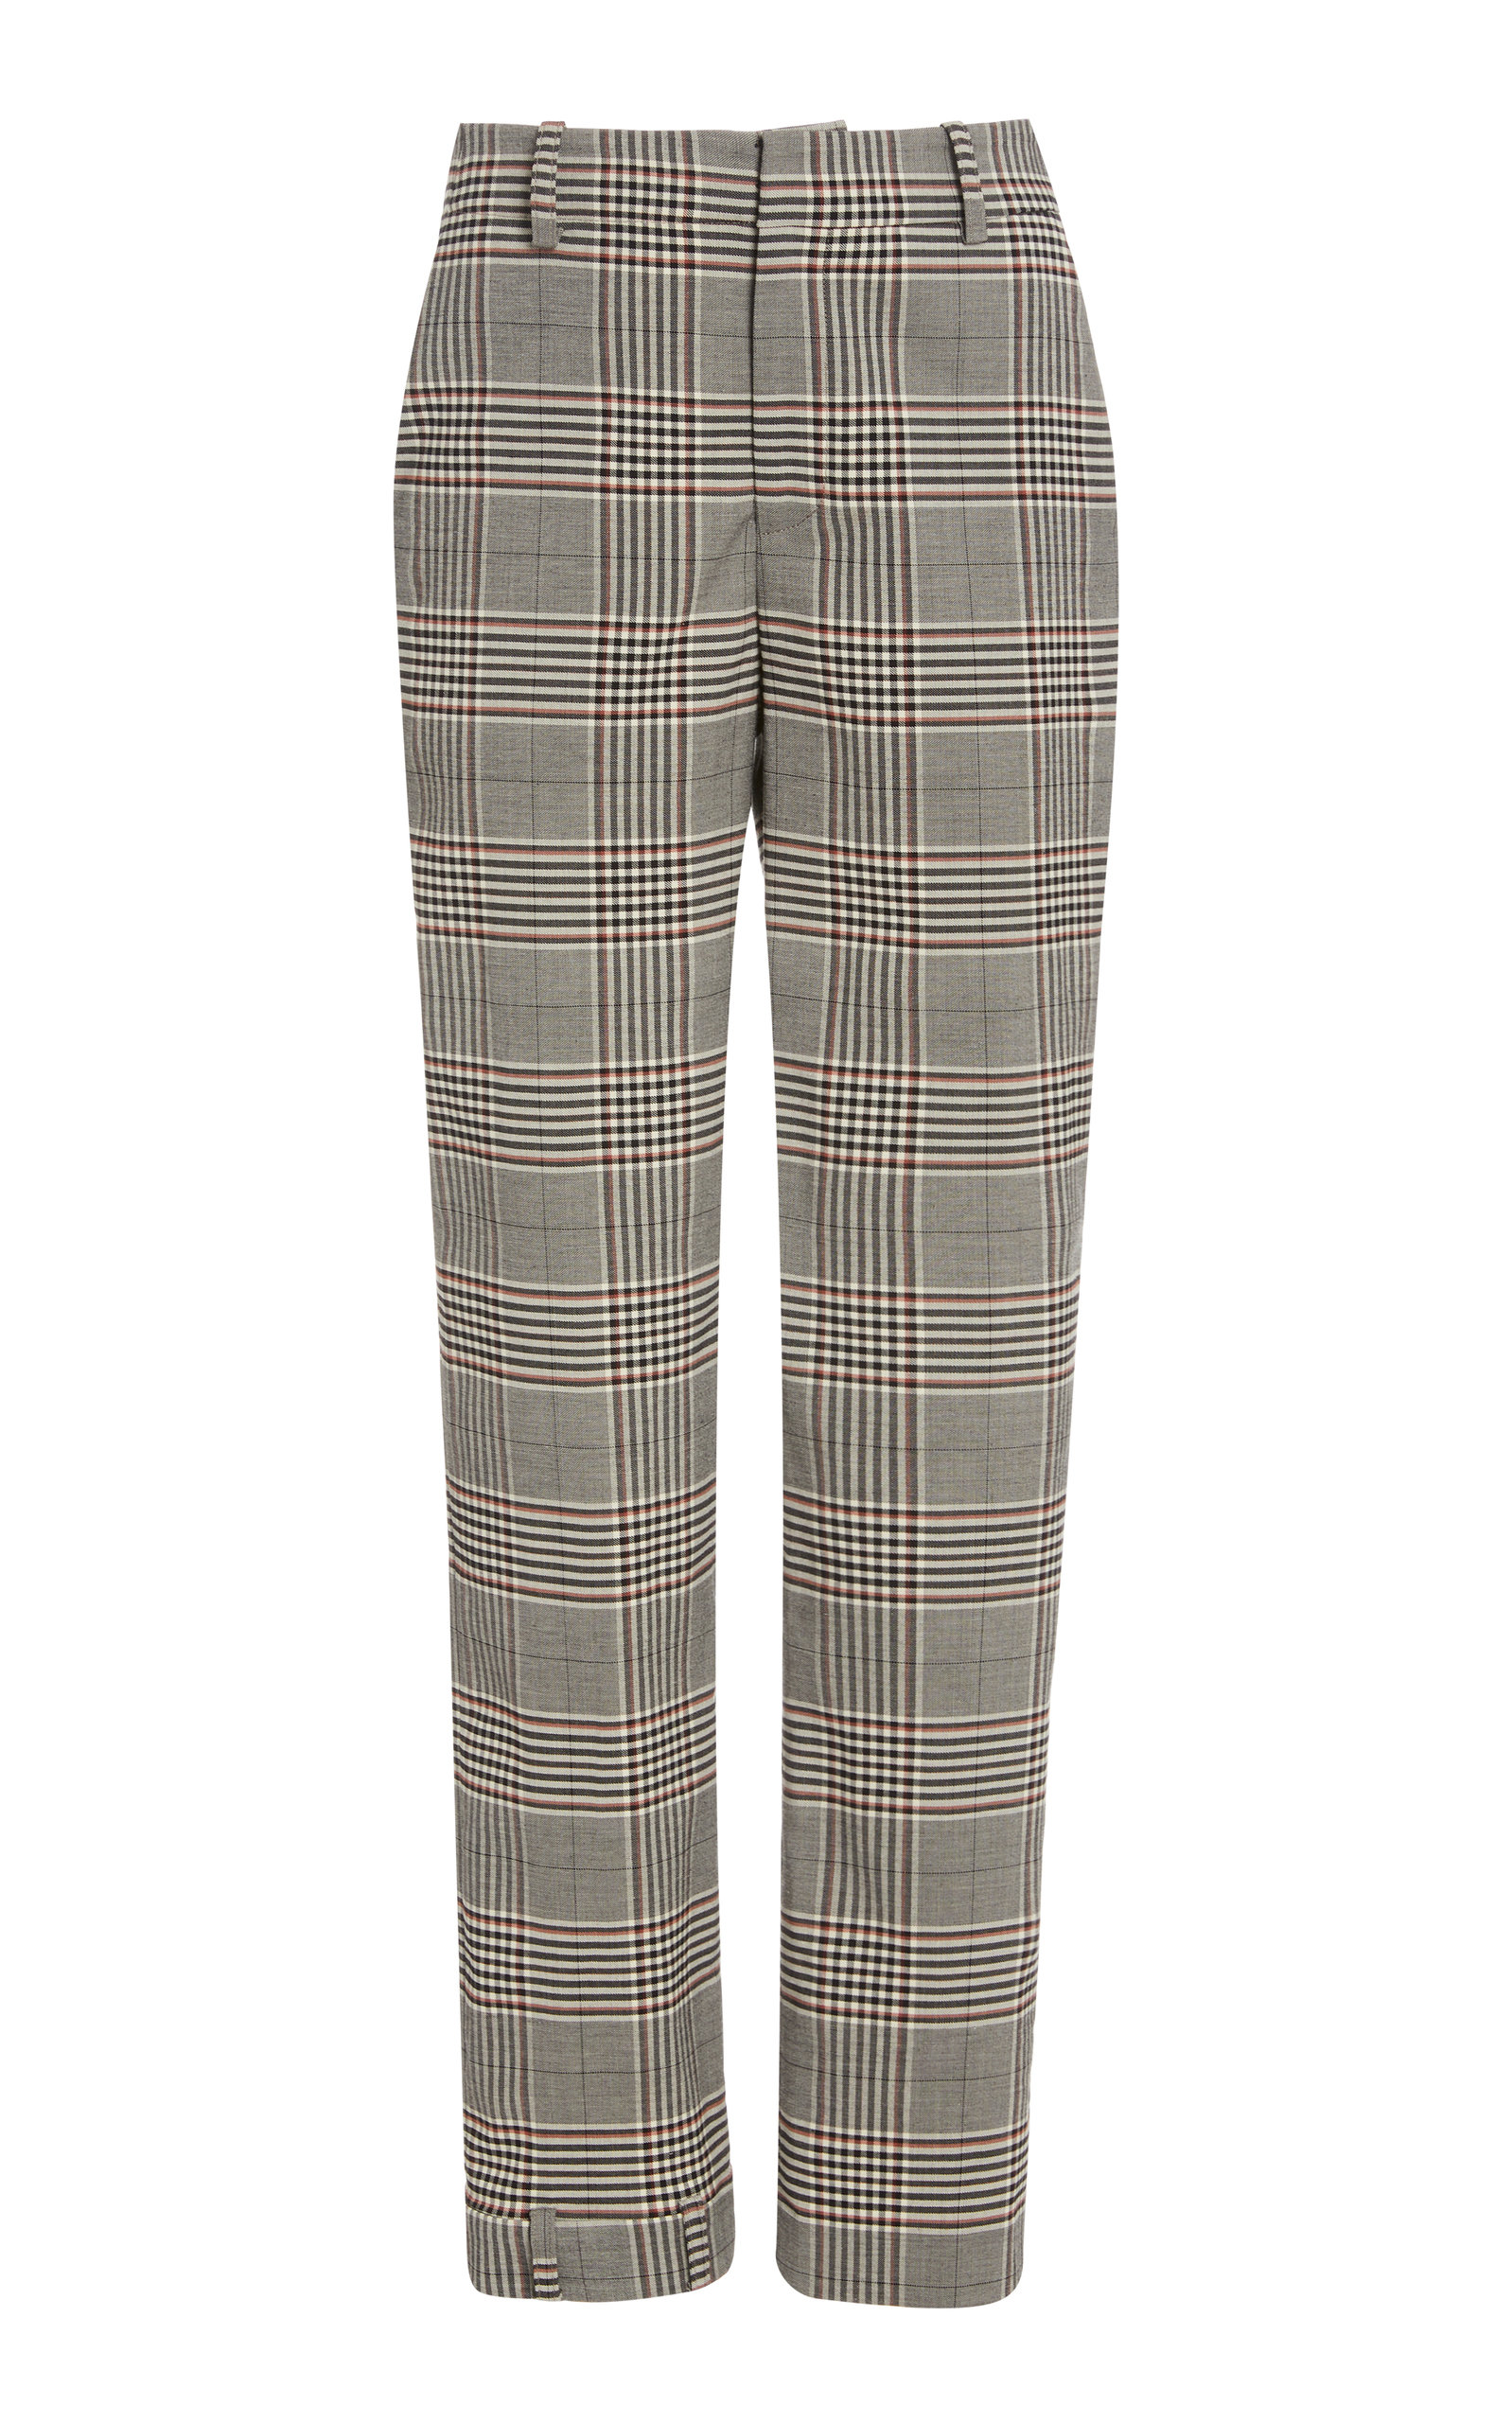 Monse PLAID UPSIDE DOWN SKINNY LEG PANTS